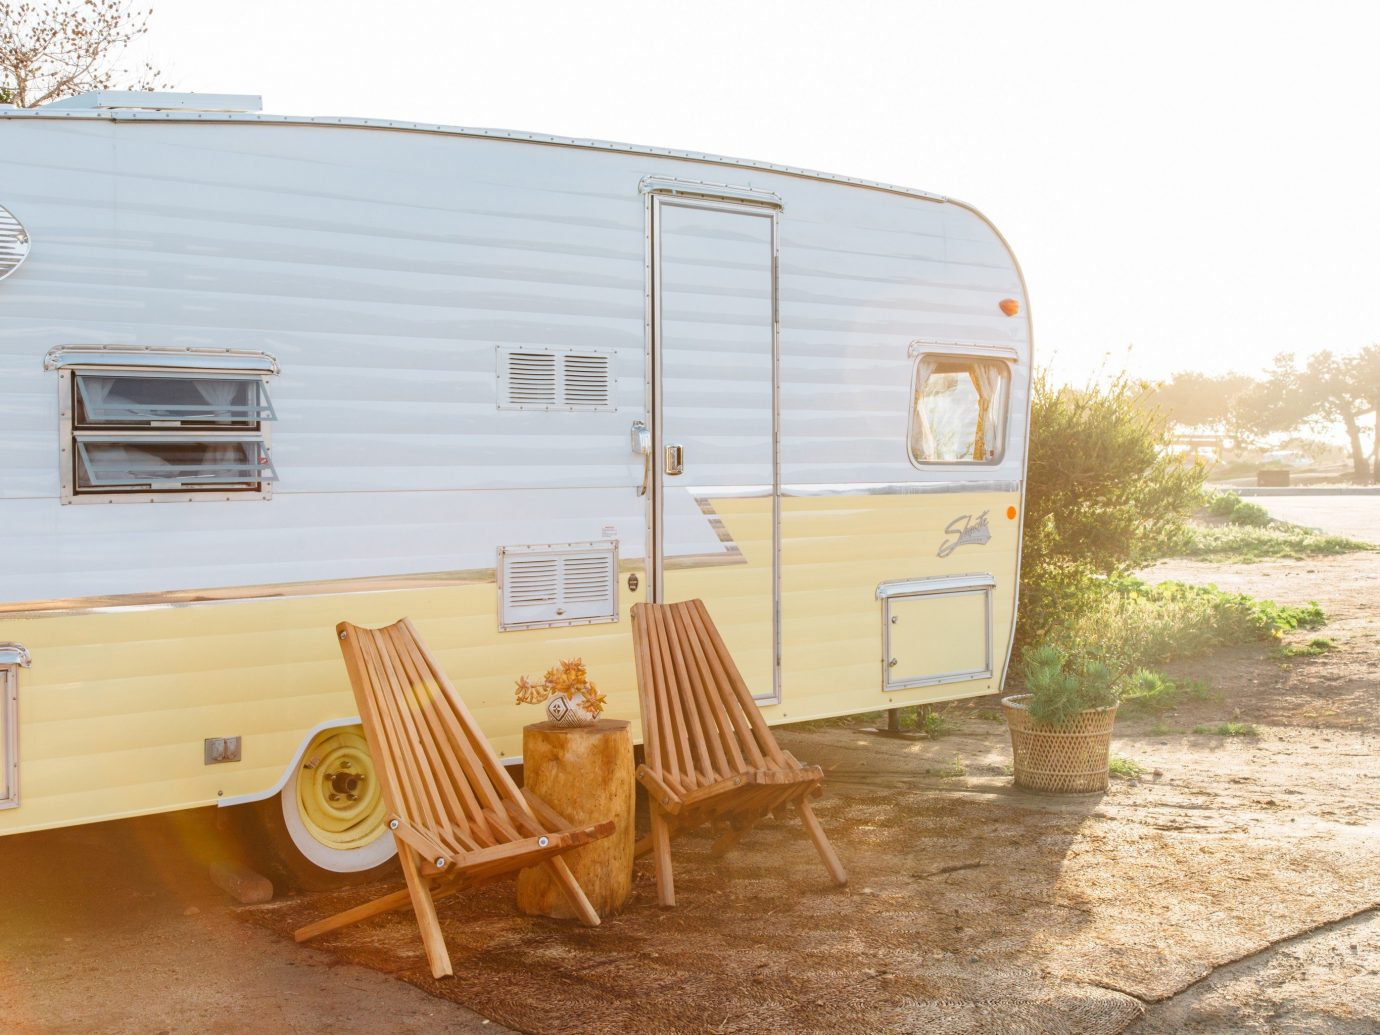 Trip Ideas sky trailer vehicle property camper cottage wooden real estate